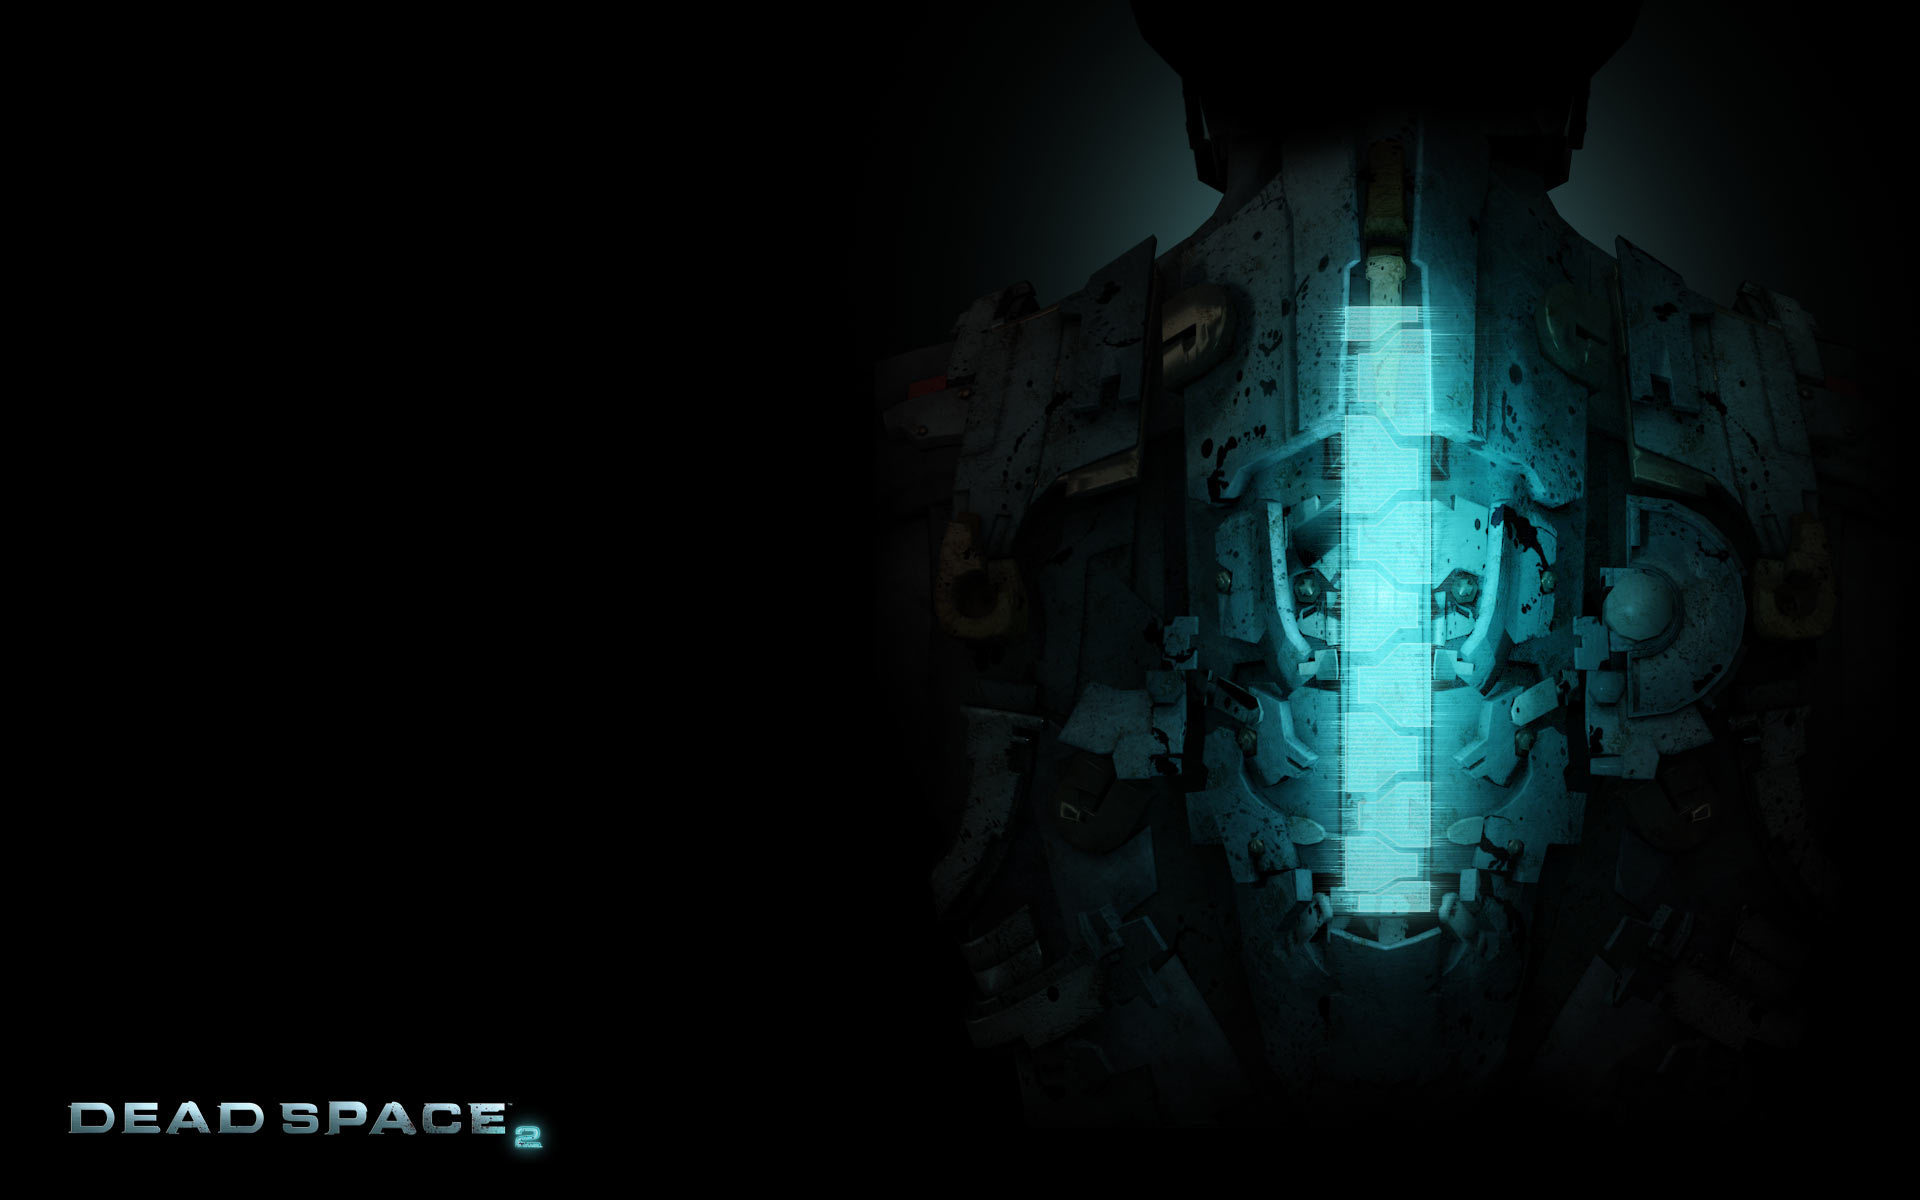 Dead Space 2 Rig Dead Space Photo 11919942 Fanpop